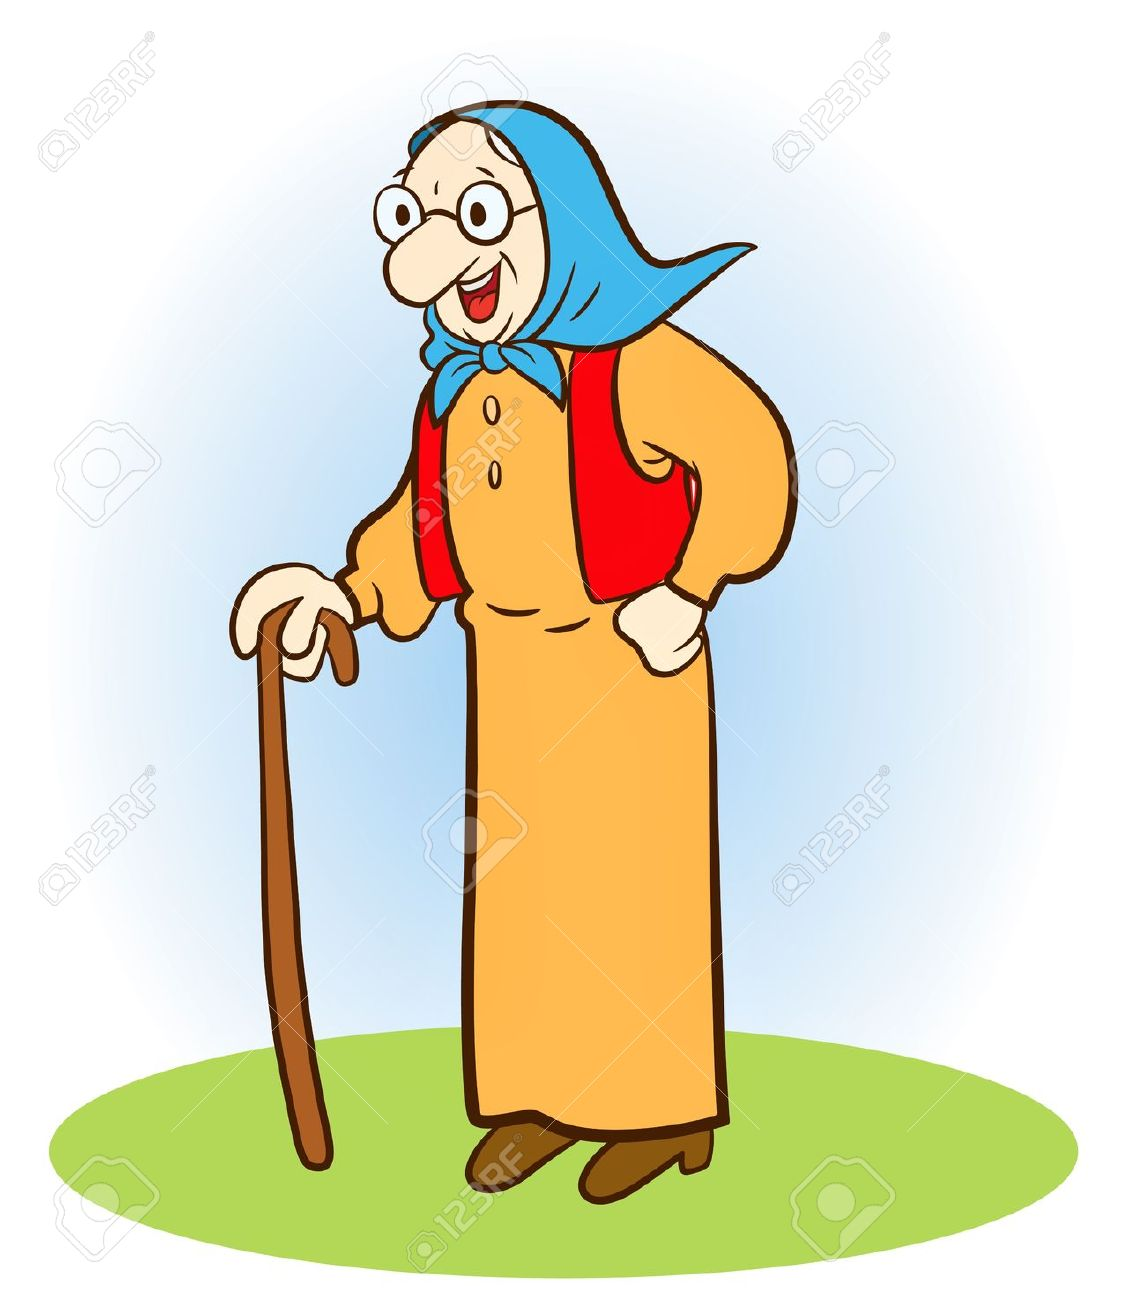 Animated old lady clipart clip black and white library Cartoon Old Woman Clipart | Free download best Cartoon Old Woman ... clip black and white library